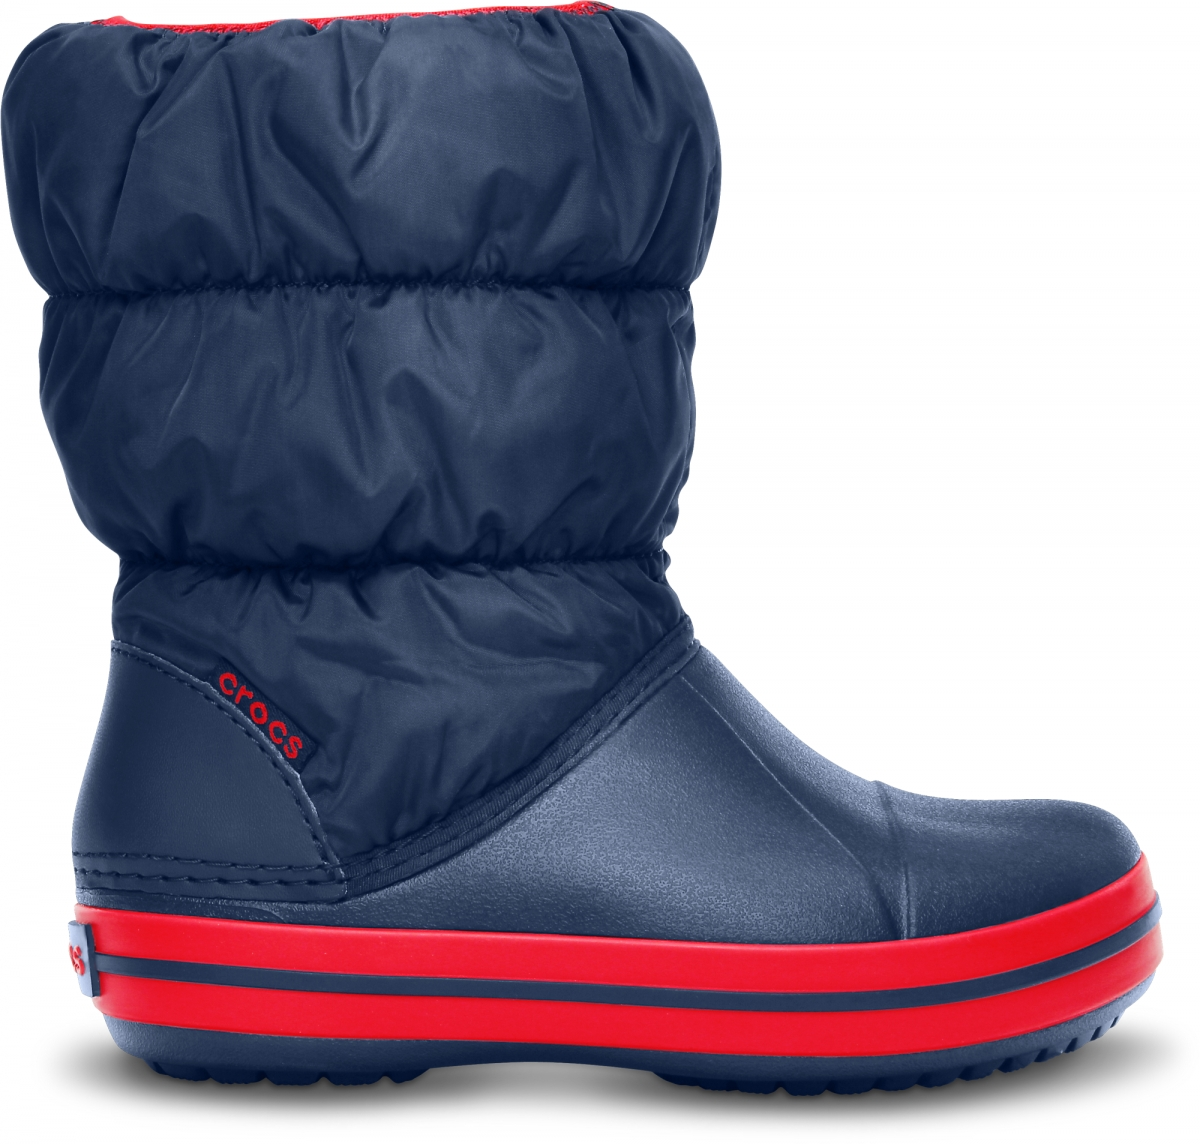 Crocs Winter Puff Boot Kids - Navy/Red, C12 (29-30)